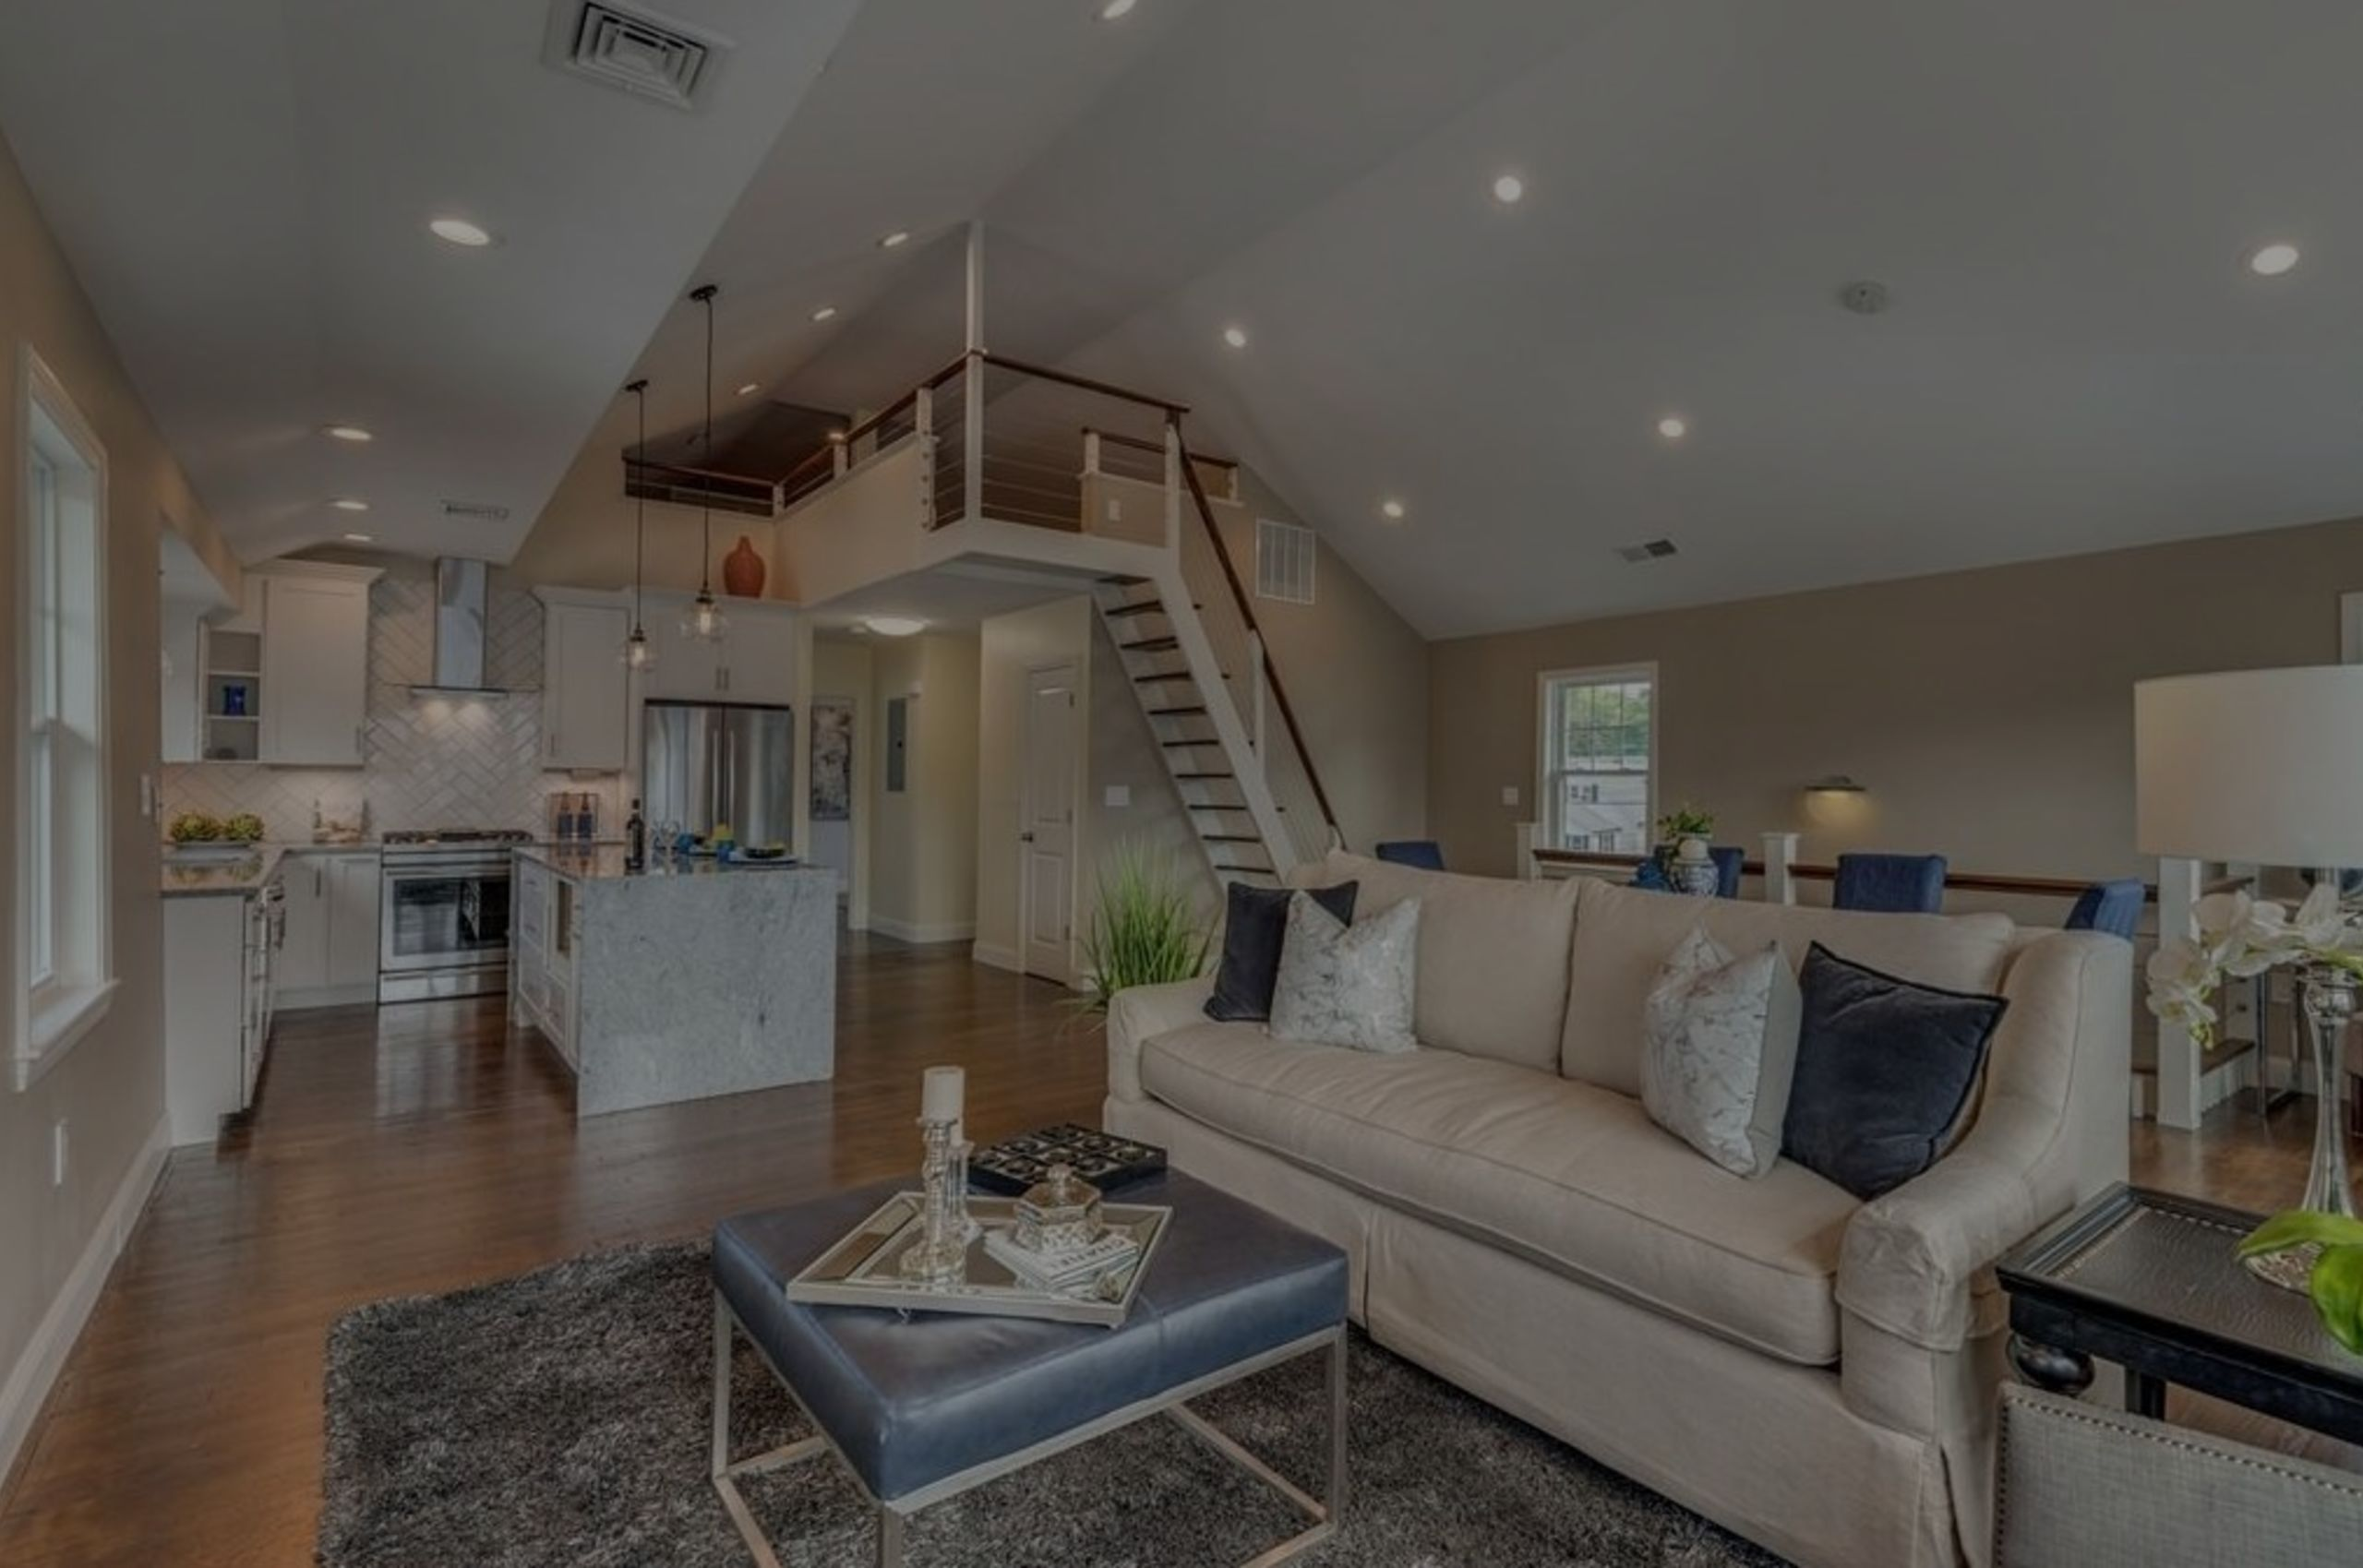 5 Open Houses In Medford This Weekend